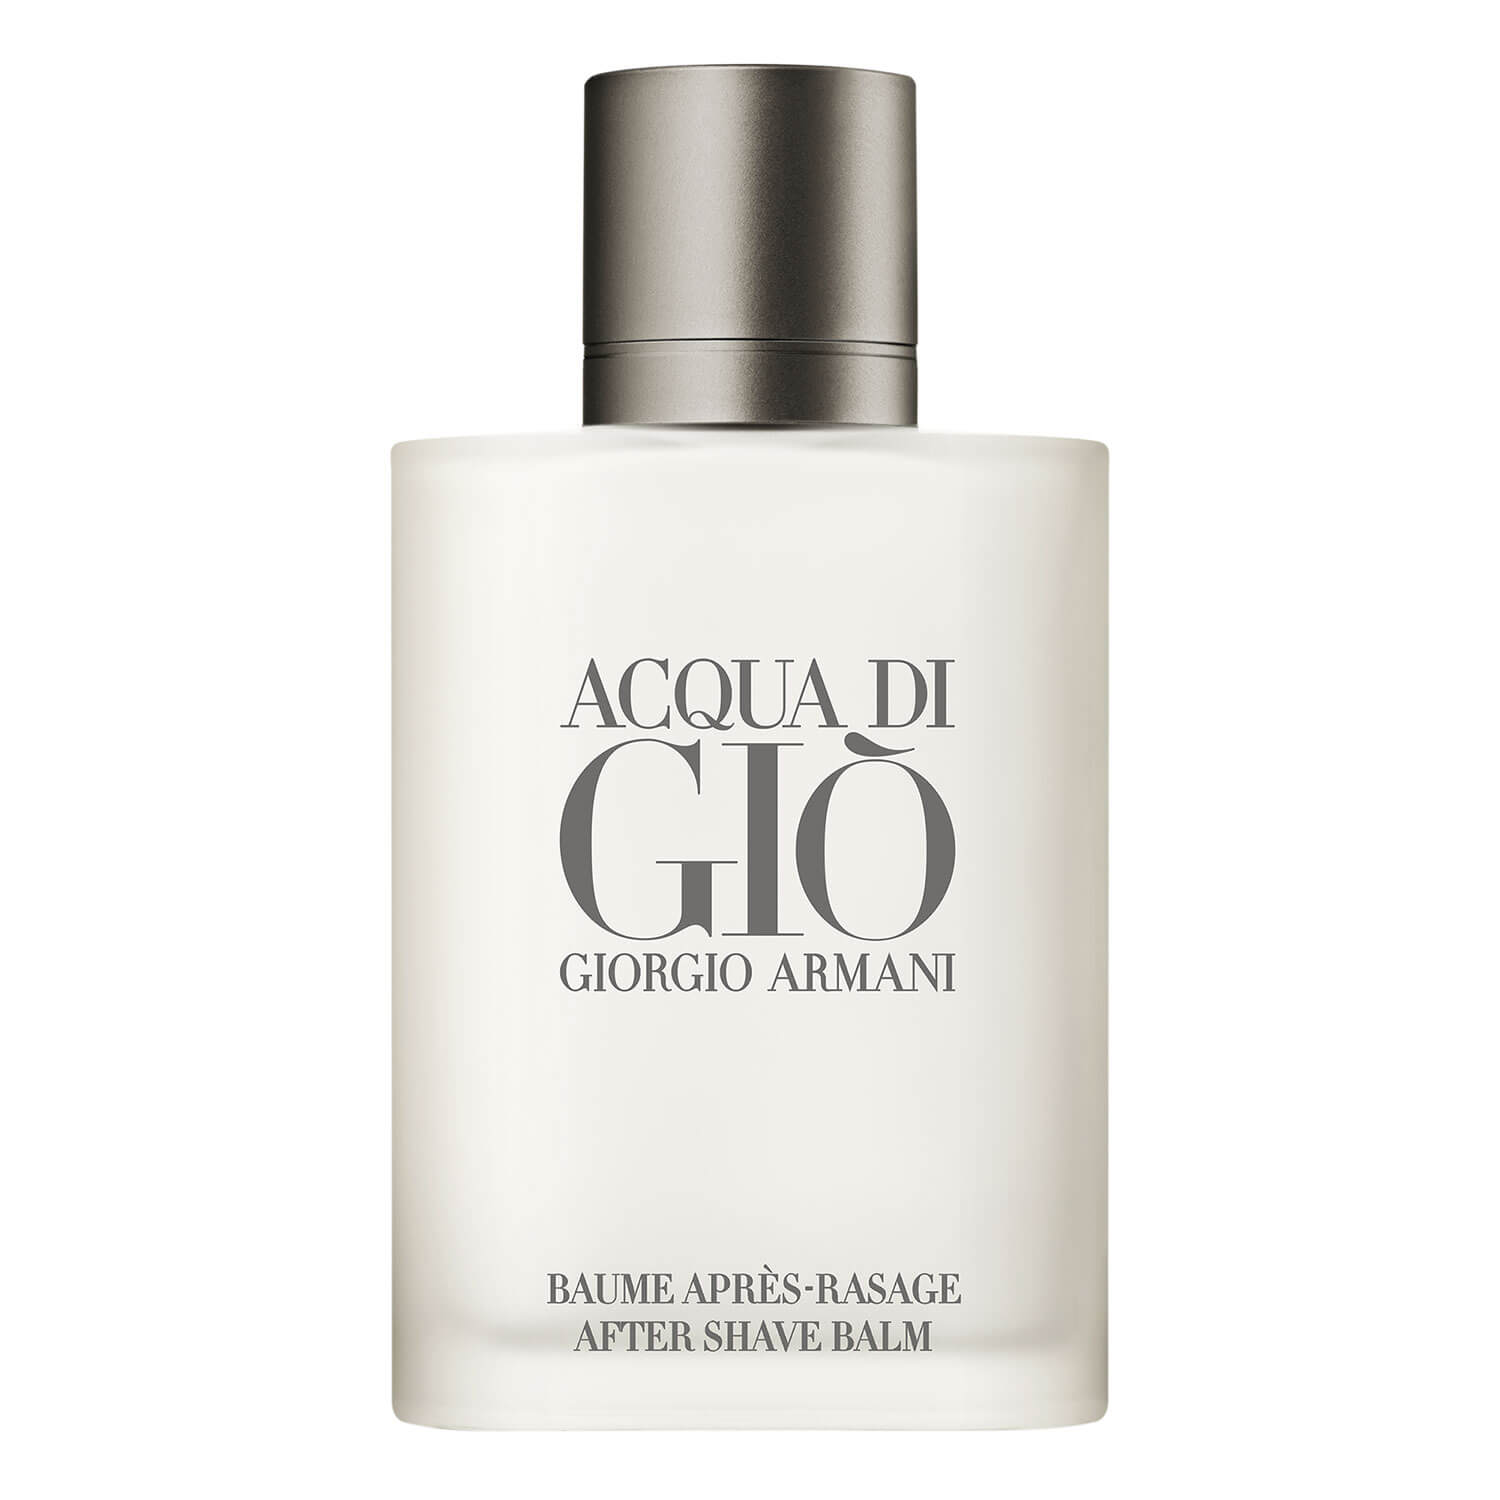 Acqua di Giò - After Shave Balm